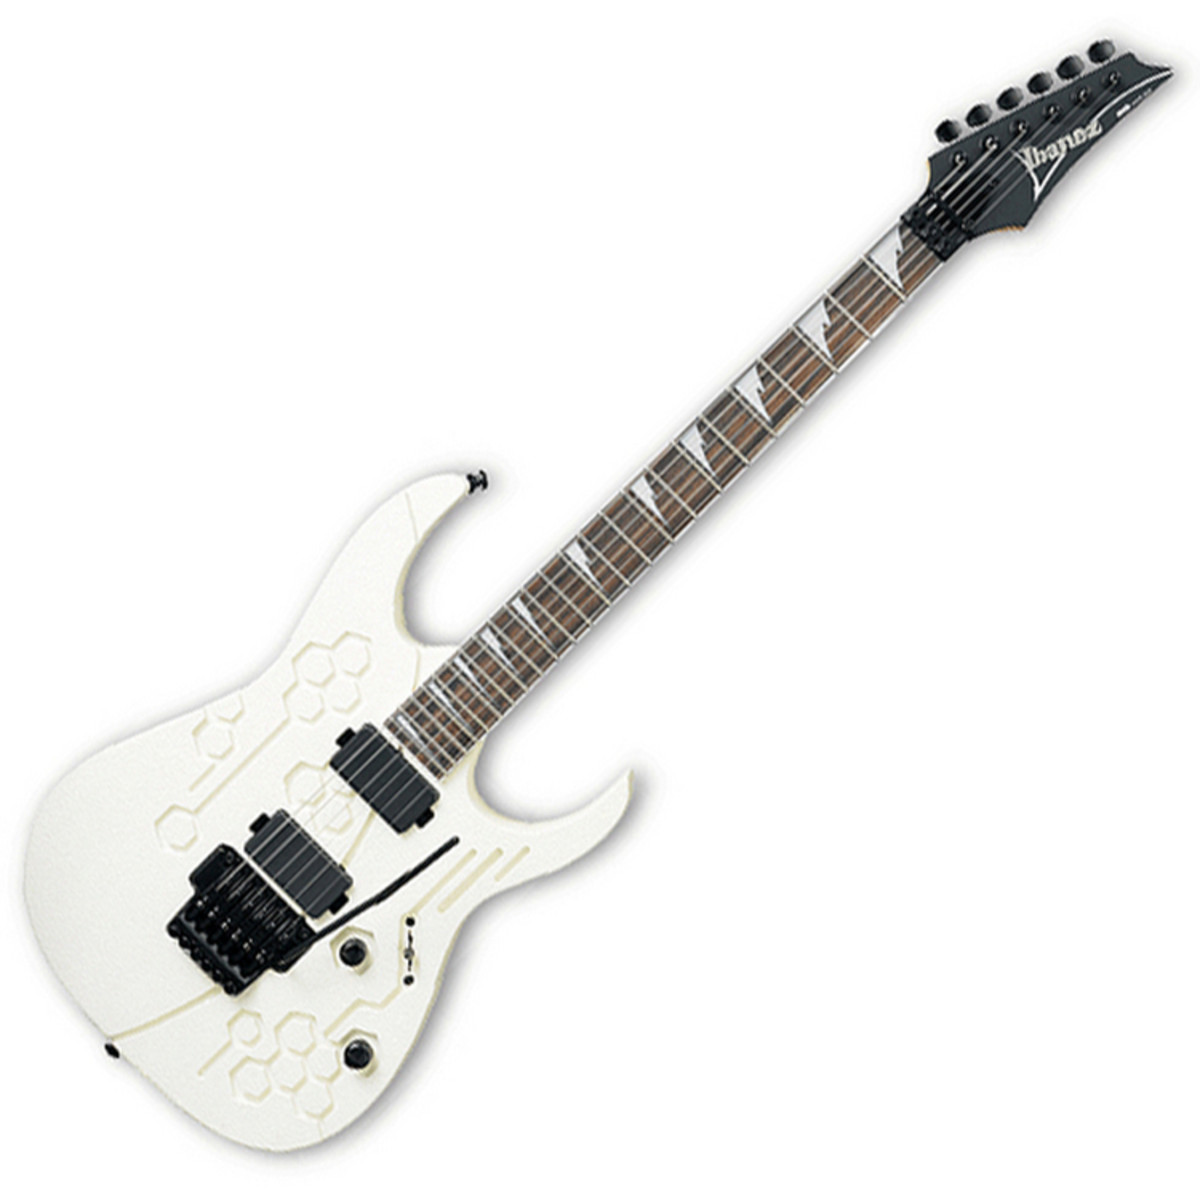 Ibanez Rg420eg Electric Guitar White Beehive At Gear4music